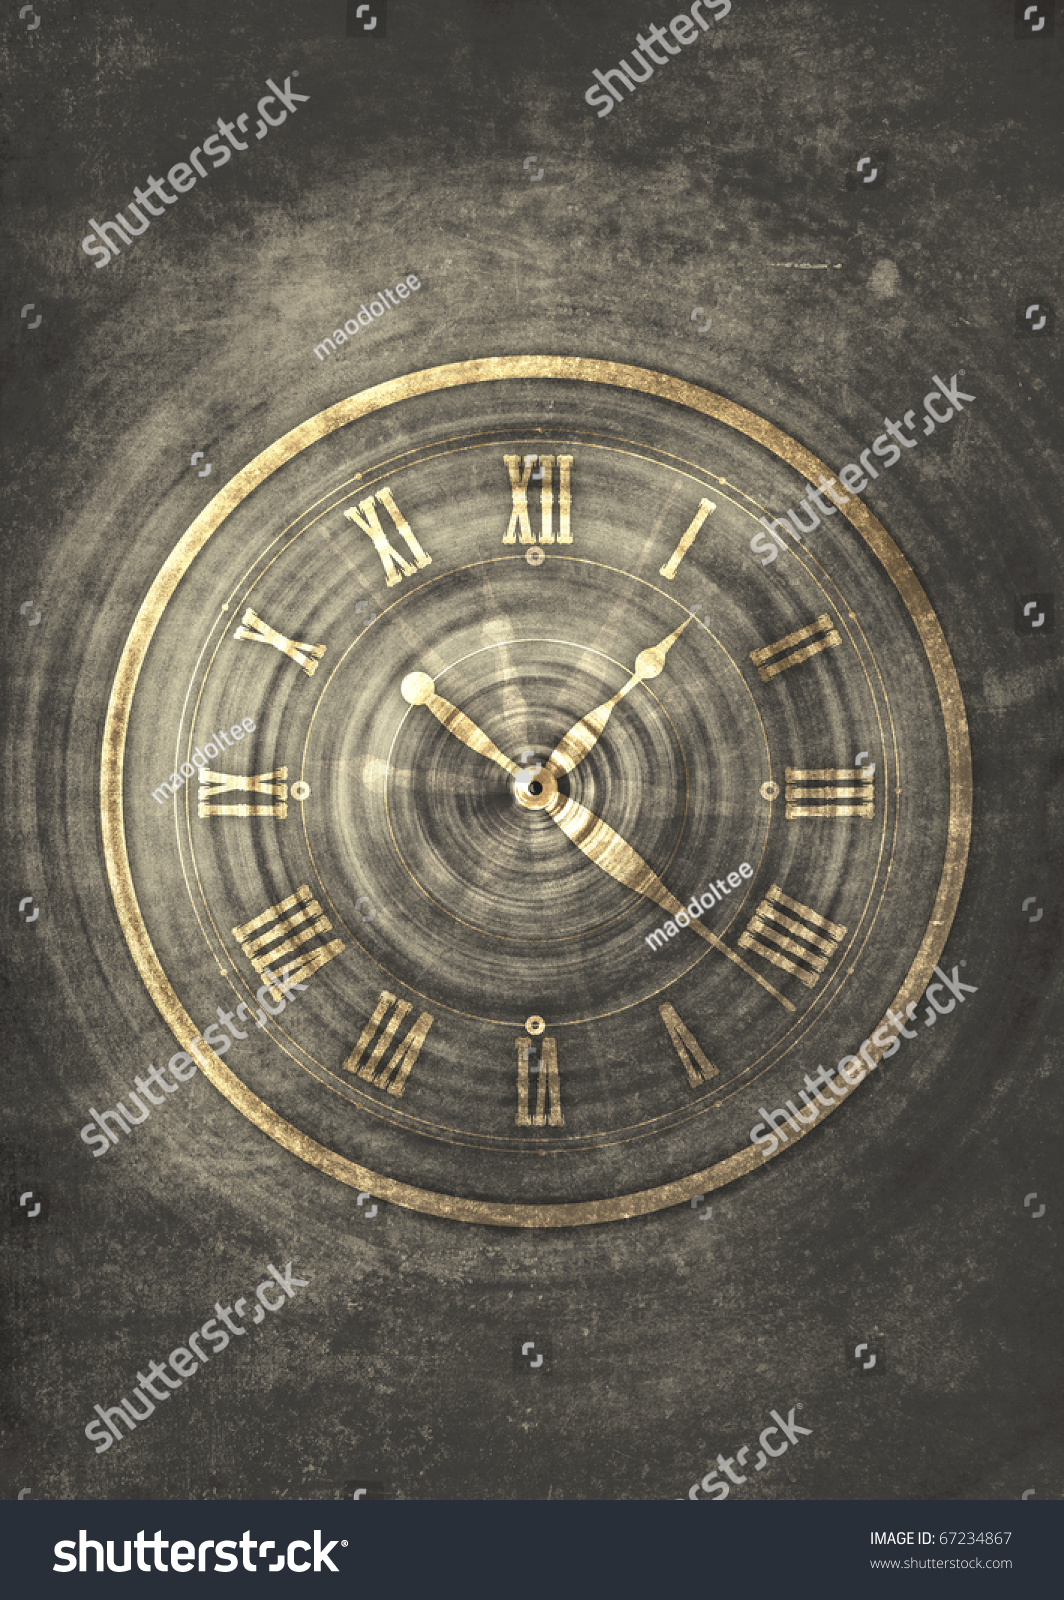 and clock abstract concept - photo #1